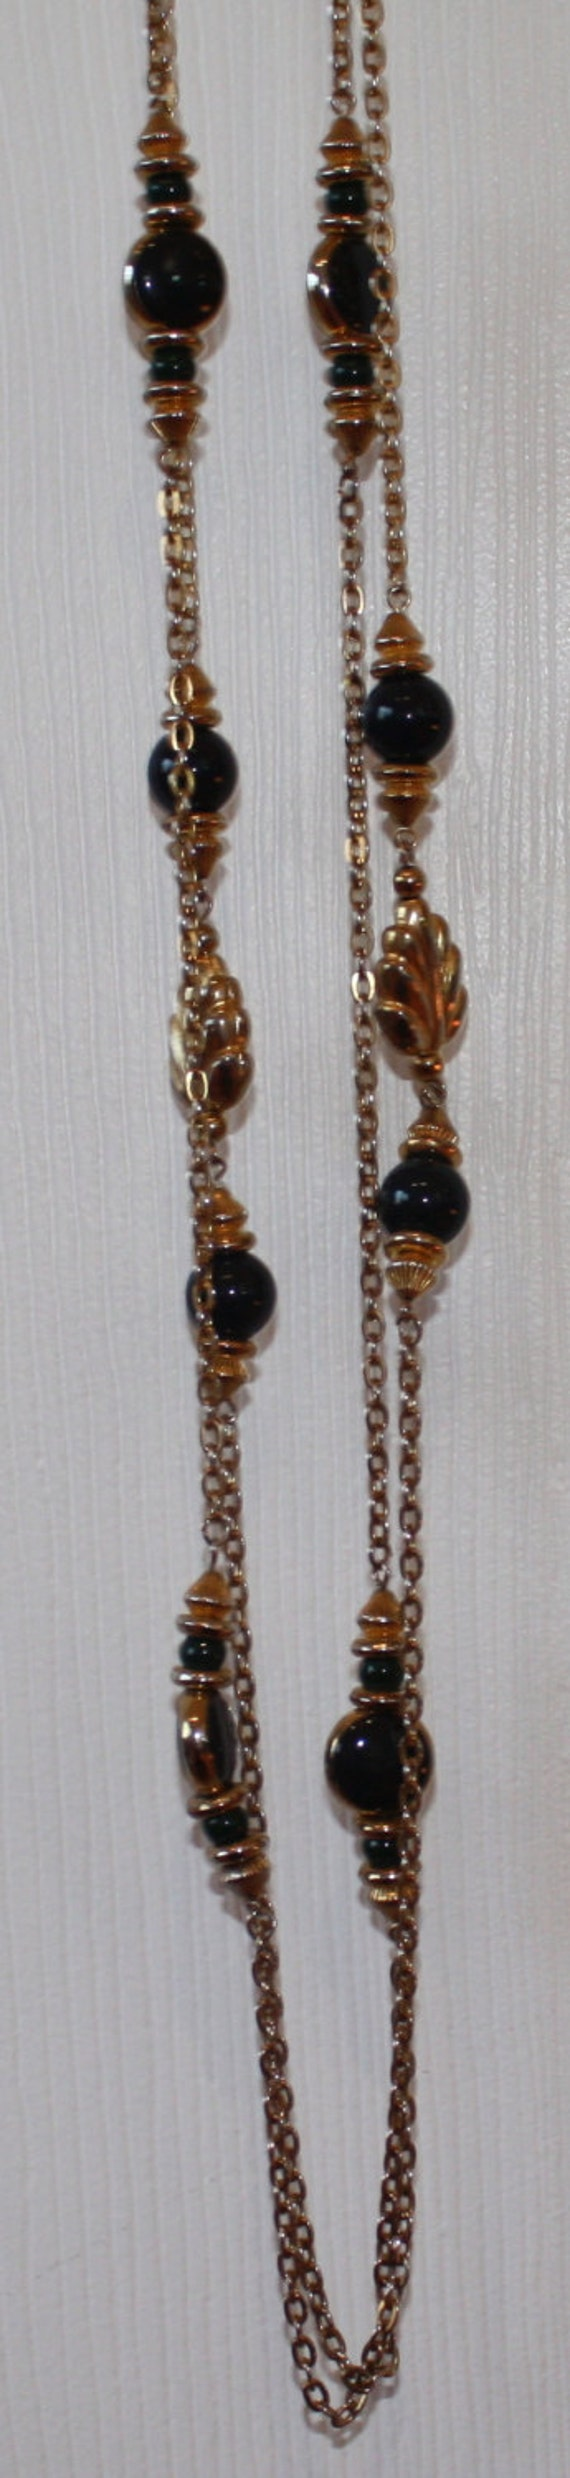 "Double Strand Gold toned NECKLACE with Navy and Dark Tiel Beads  34"" Long"